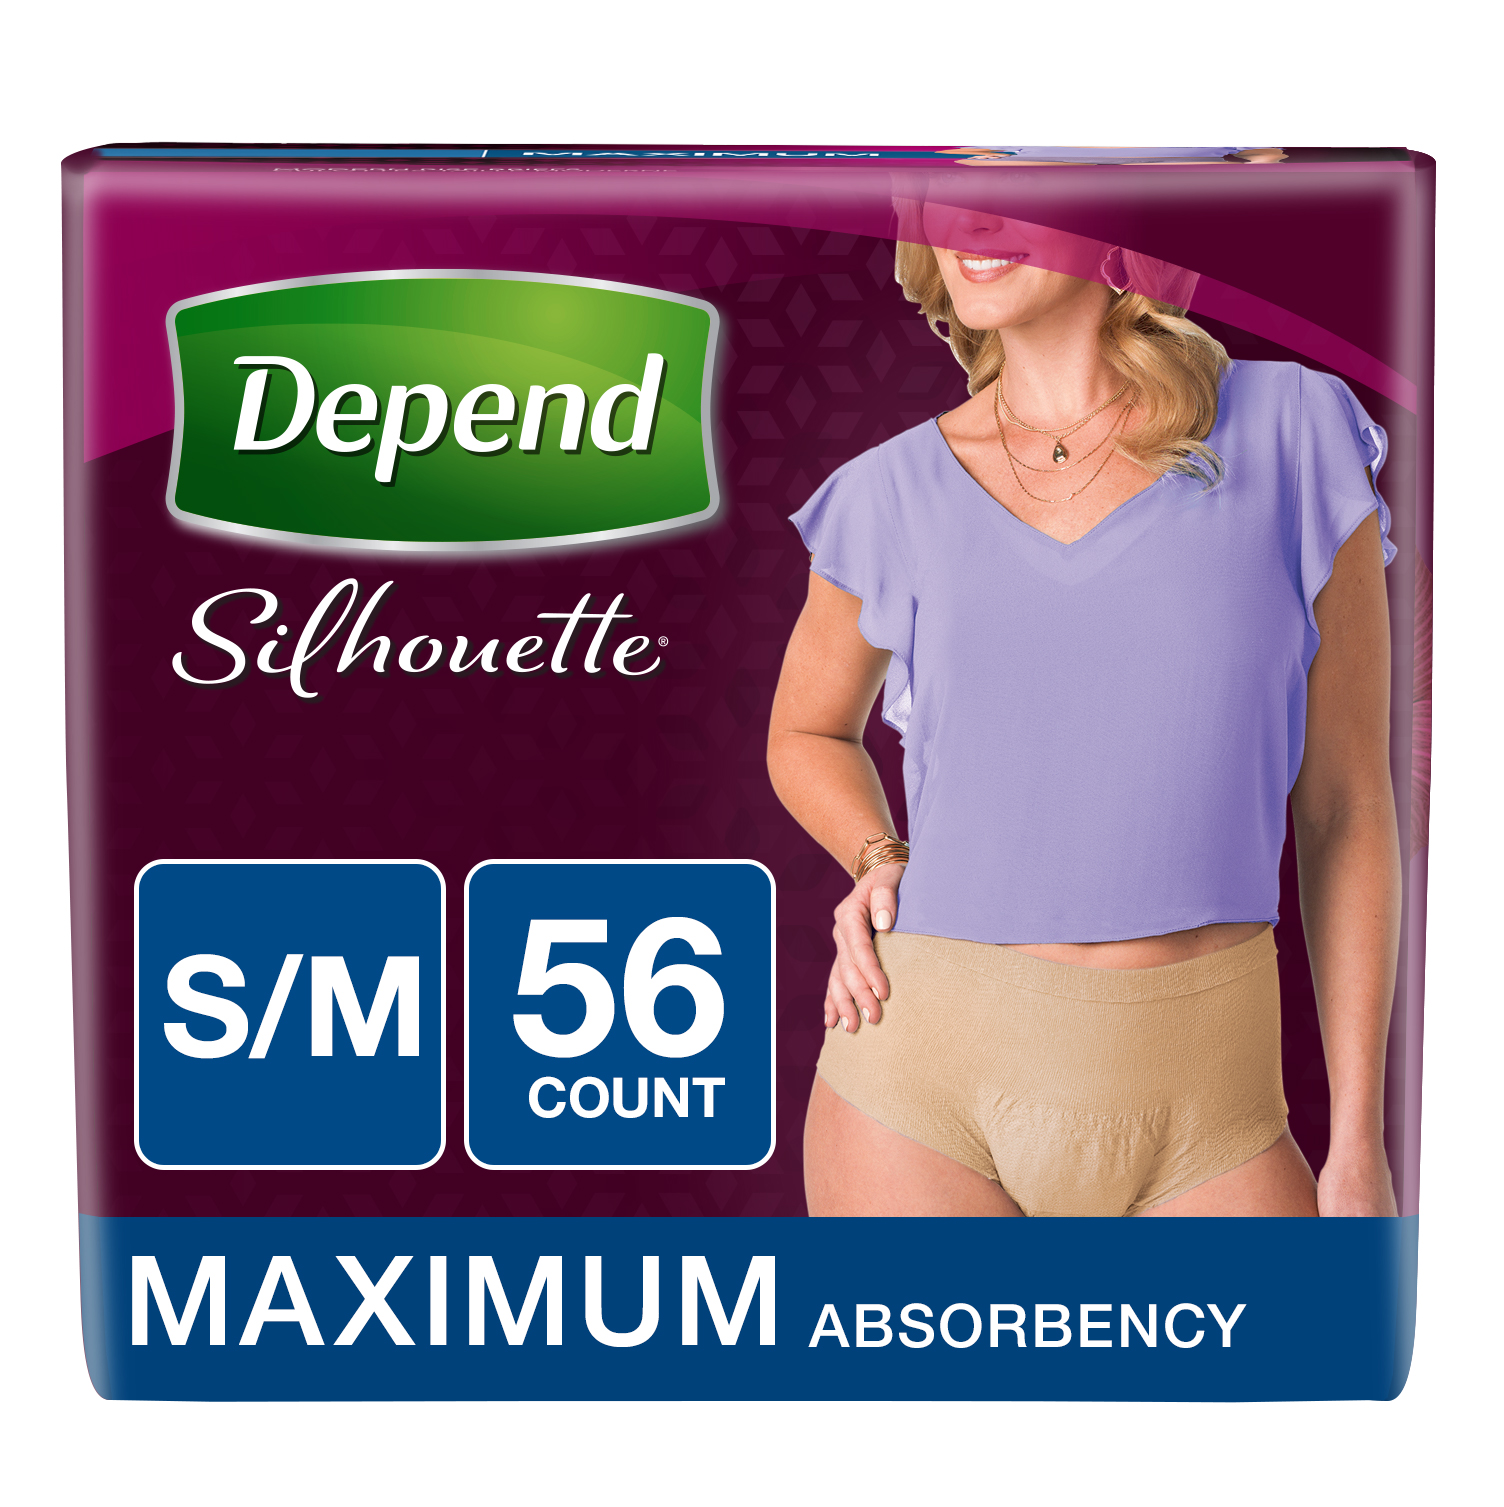 Depend Silhouette Incontinence Underwear for Women, Max Absorbency, S/M, Beige, 56 count